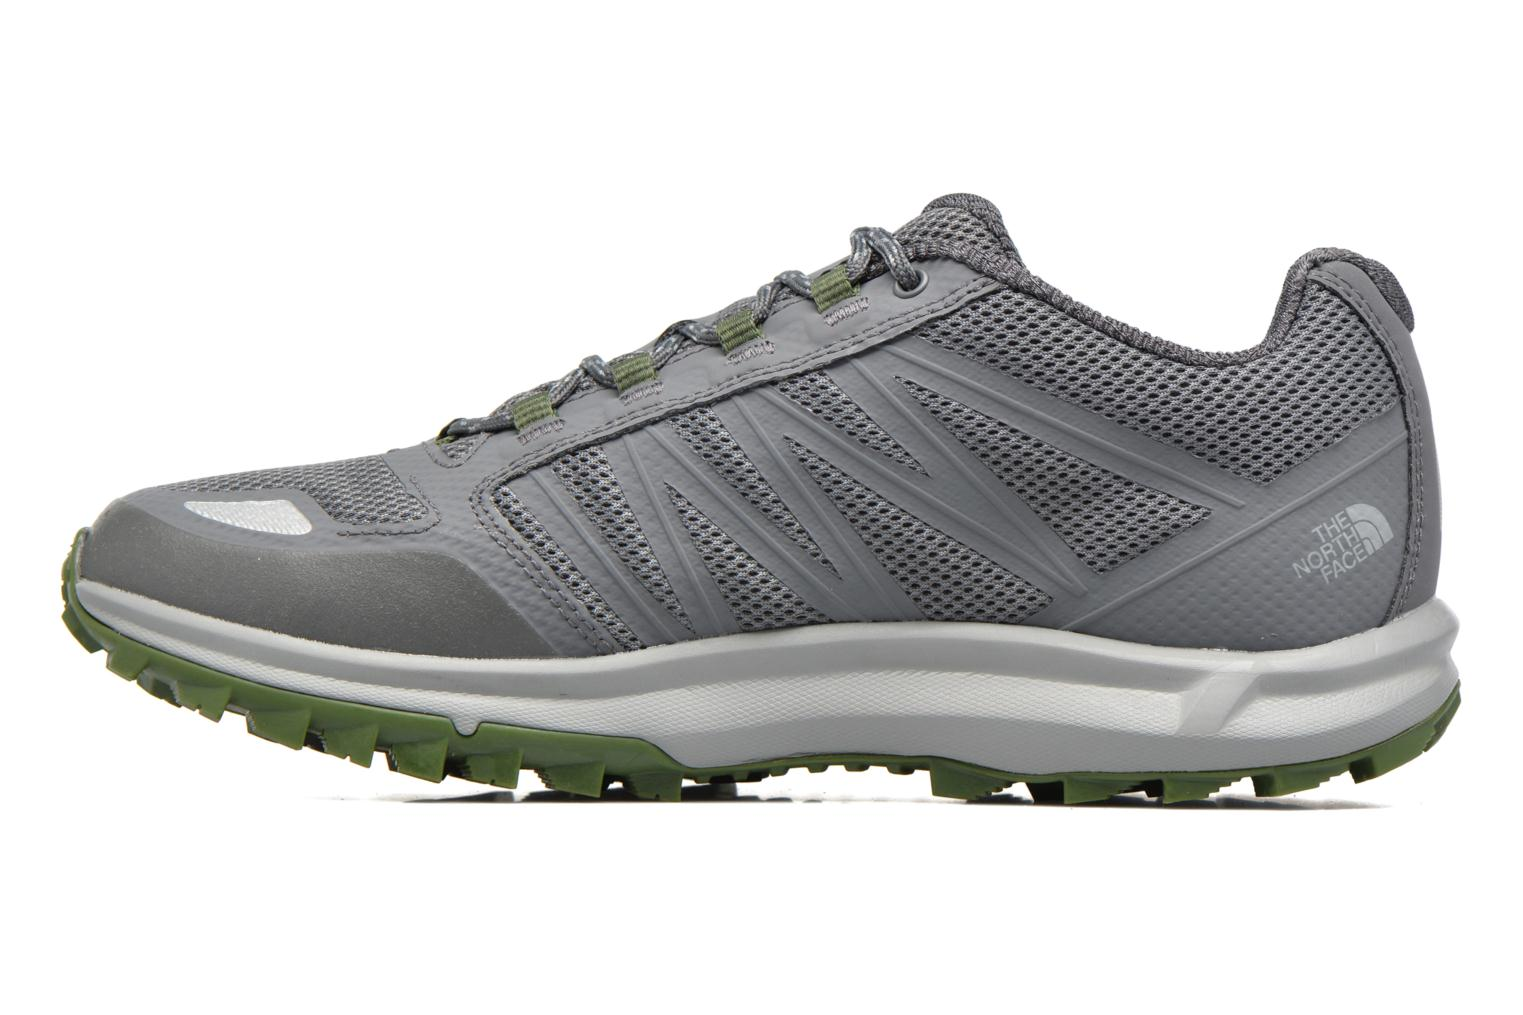 Chaussures de sport The North Face Litewave Fastpack GTX Gris vue face